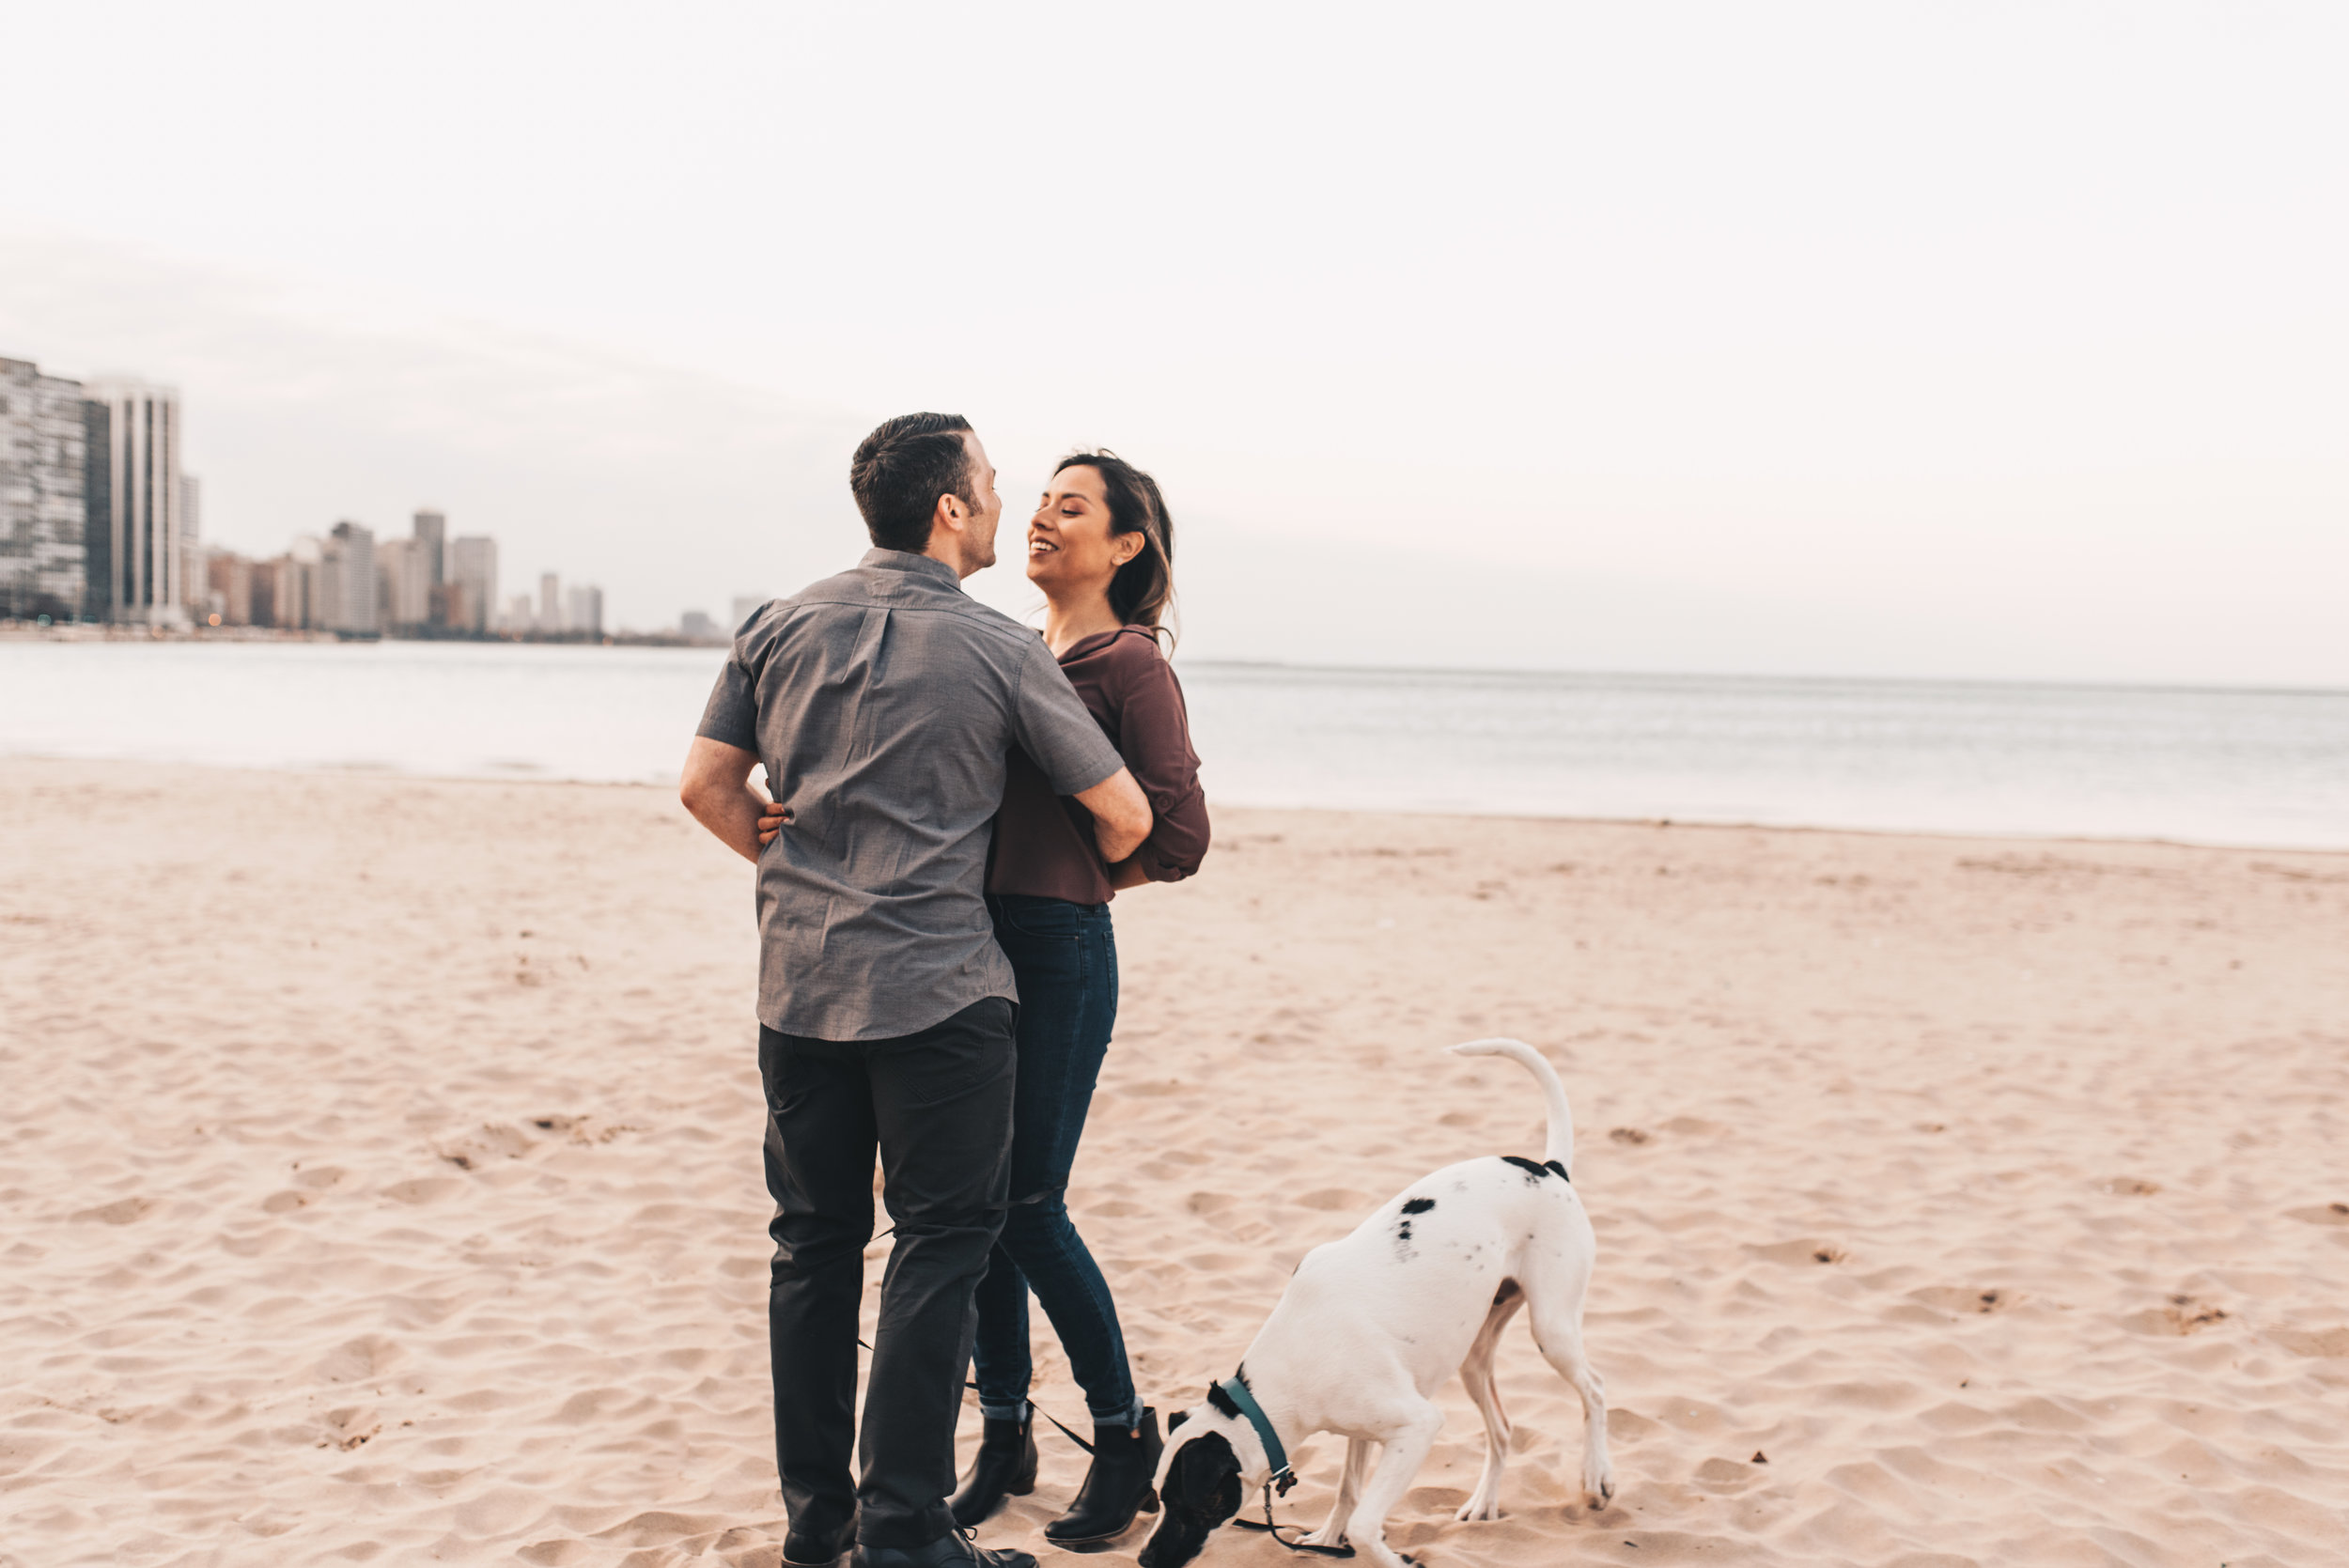 Outdoor Engagement, City Engagement, Engagement Photos, Chicago Engagement Photographer, Chicago Engagement Photography, Milton Lee Olive Park Photos, Engagement Photos with Dog